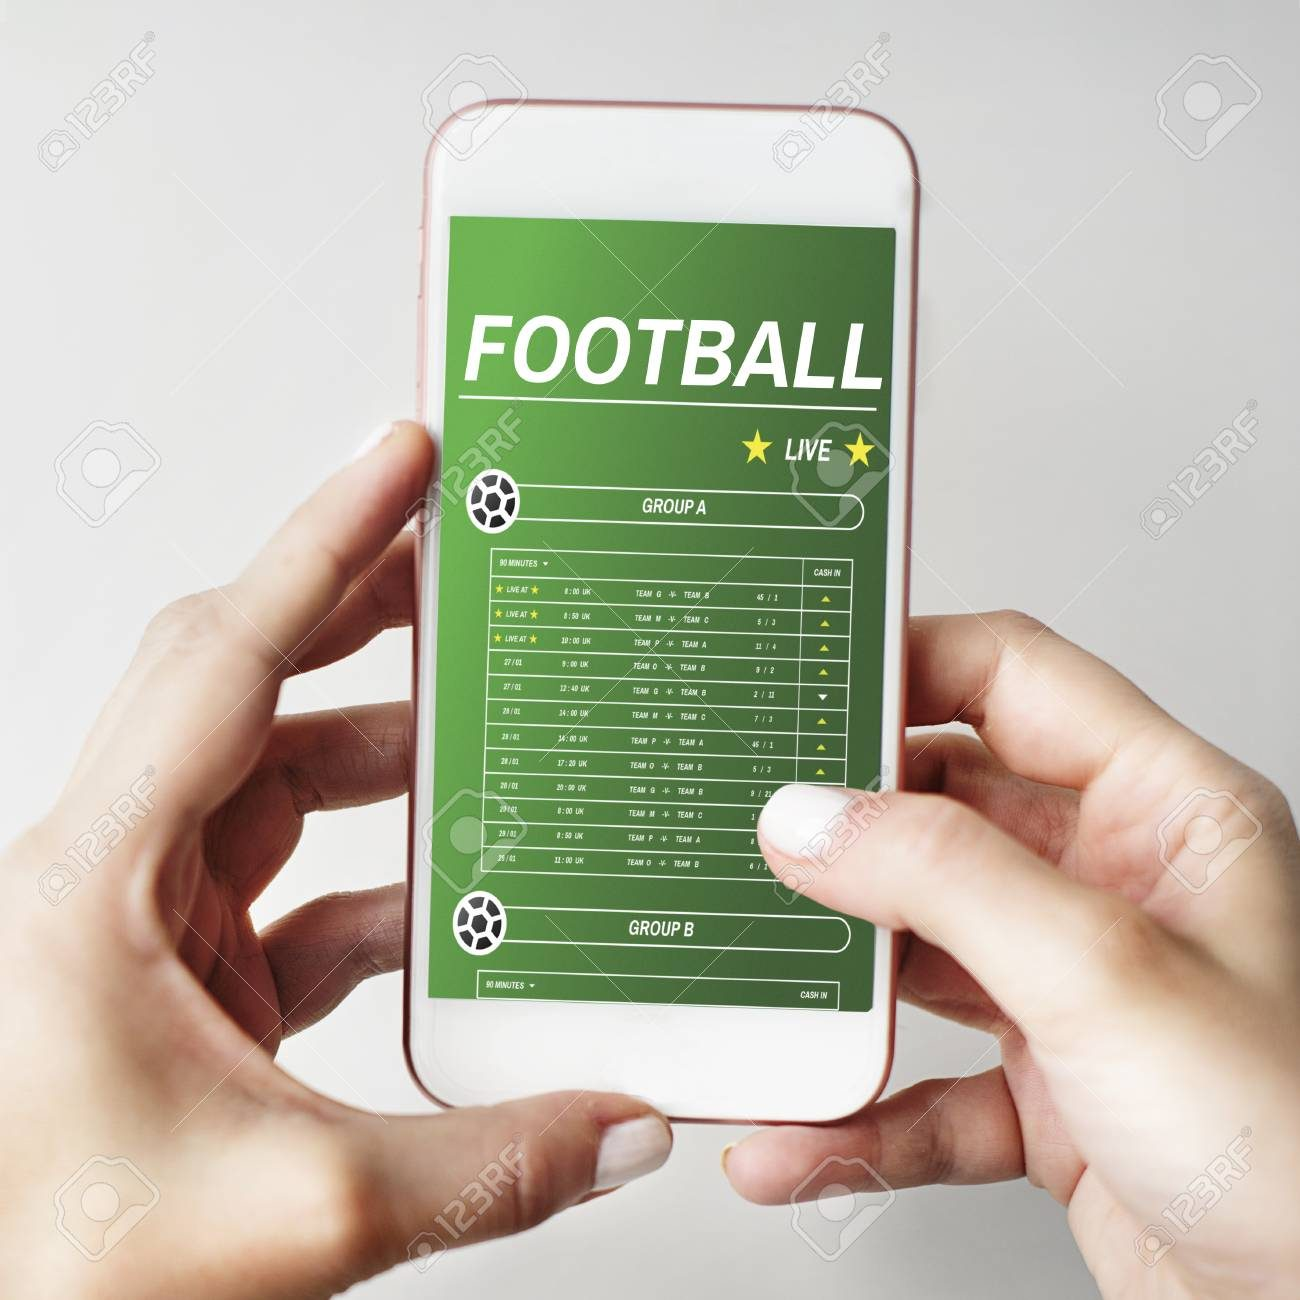 gambling-football-game-bet-concept